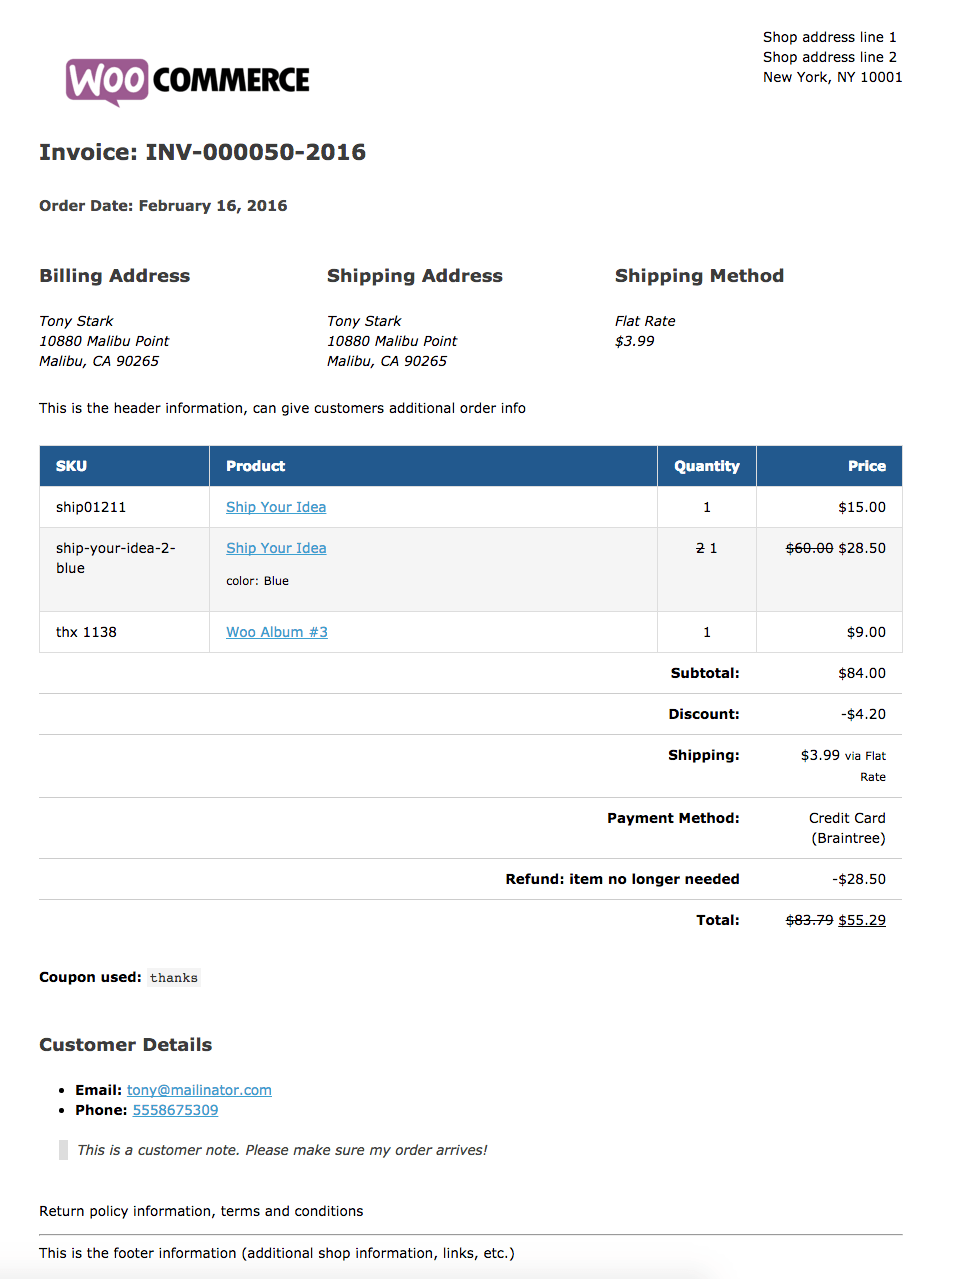 Weirdmailus  Wonderful Woocommerce Print Invoices Amp Packing Lists  Woocommerce Docs With Exciting Sample Invoice With Adorable Custom Invoice Forms Also Automotive Invoice Software In Addition Send Invoice With Paypal And Invoice Processing Platform As Well As Supplementary Invoice Meaning Additionally Create My Own Invoice From Docswoocommercecom With Weirdmailus  Exciting Woocommerce Print Invoices Amp Packing Lists  Woocommerce Docs With Adorable Sample Invoice And Wonderful Custom Invoice Forms Also Automotive Invoice Software In Addition Send Invoice With Paypal From Docswoocommercecom